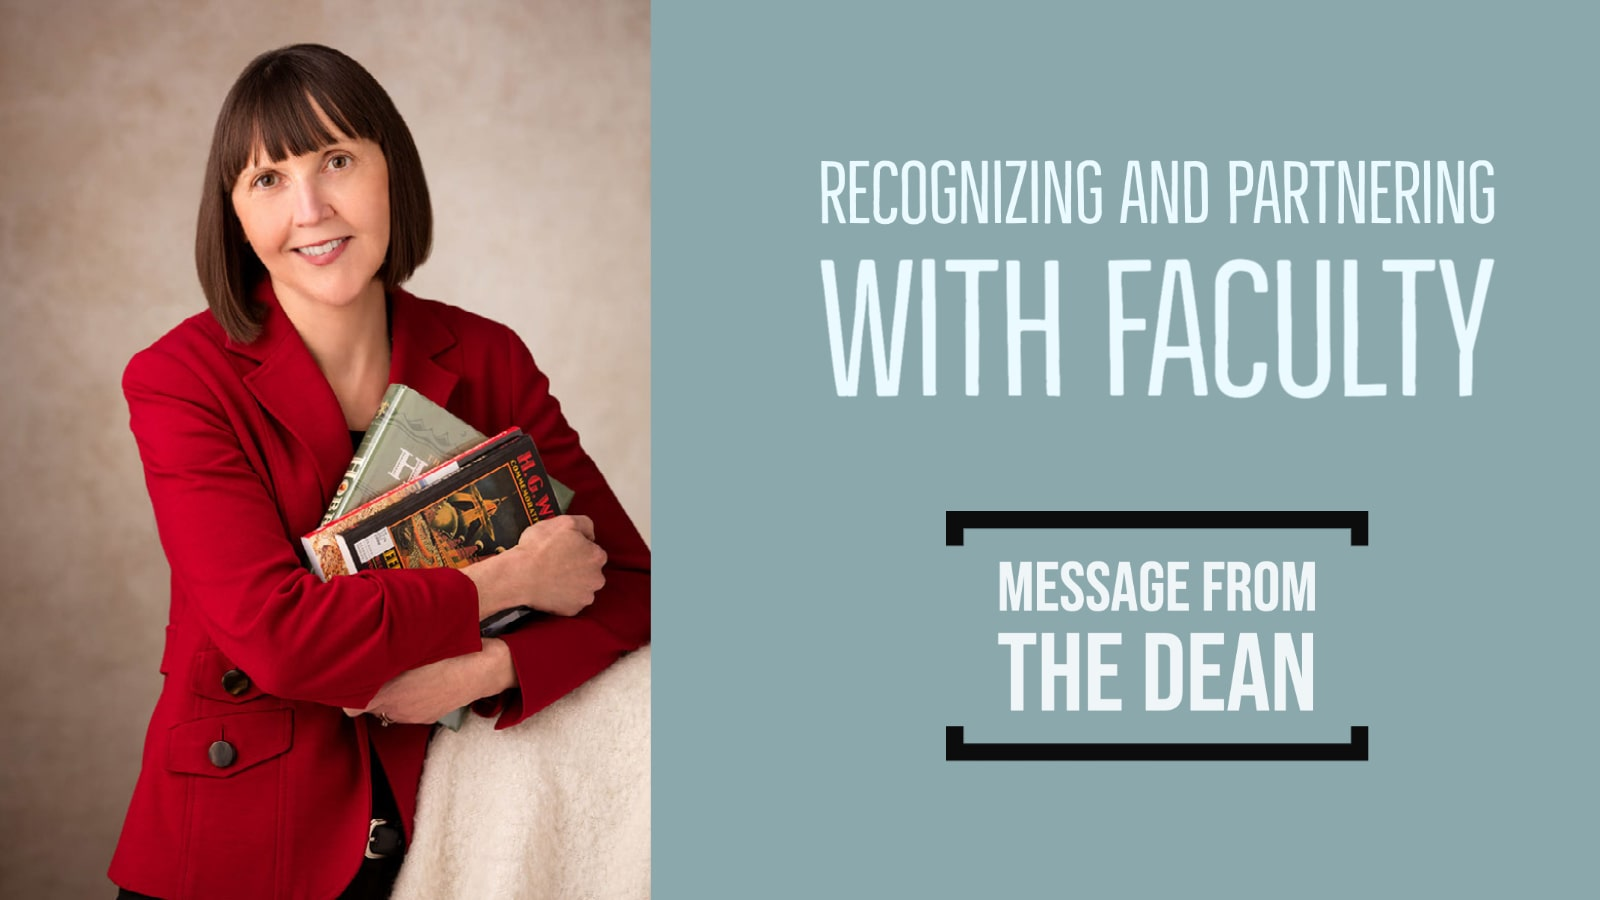 recognizing and partnering with faculty message from the dean photo of dean comer holding books